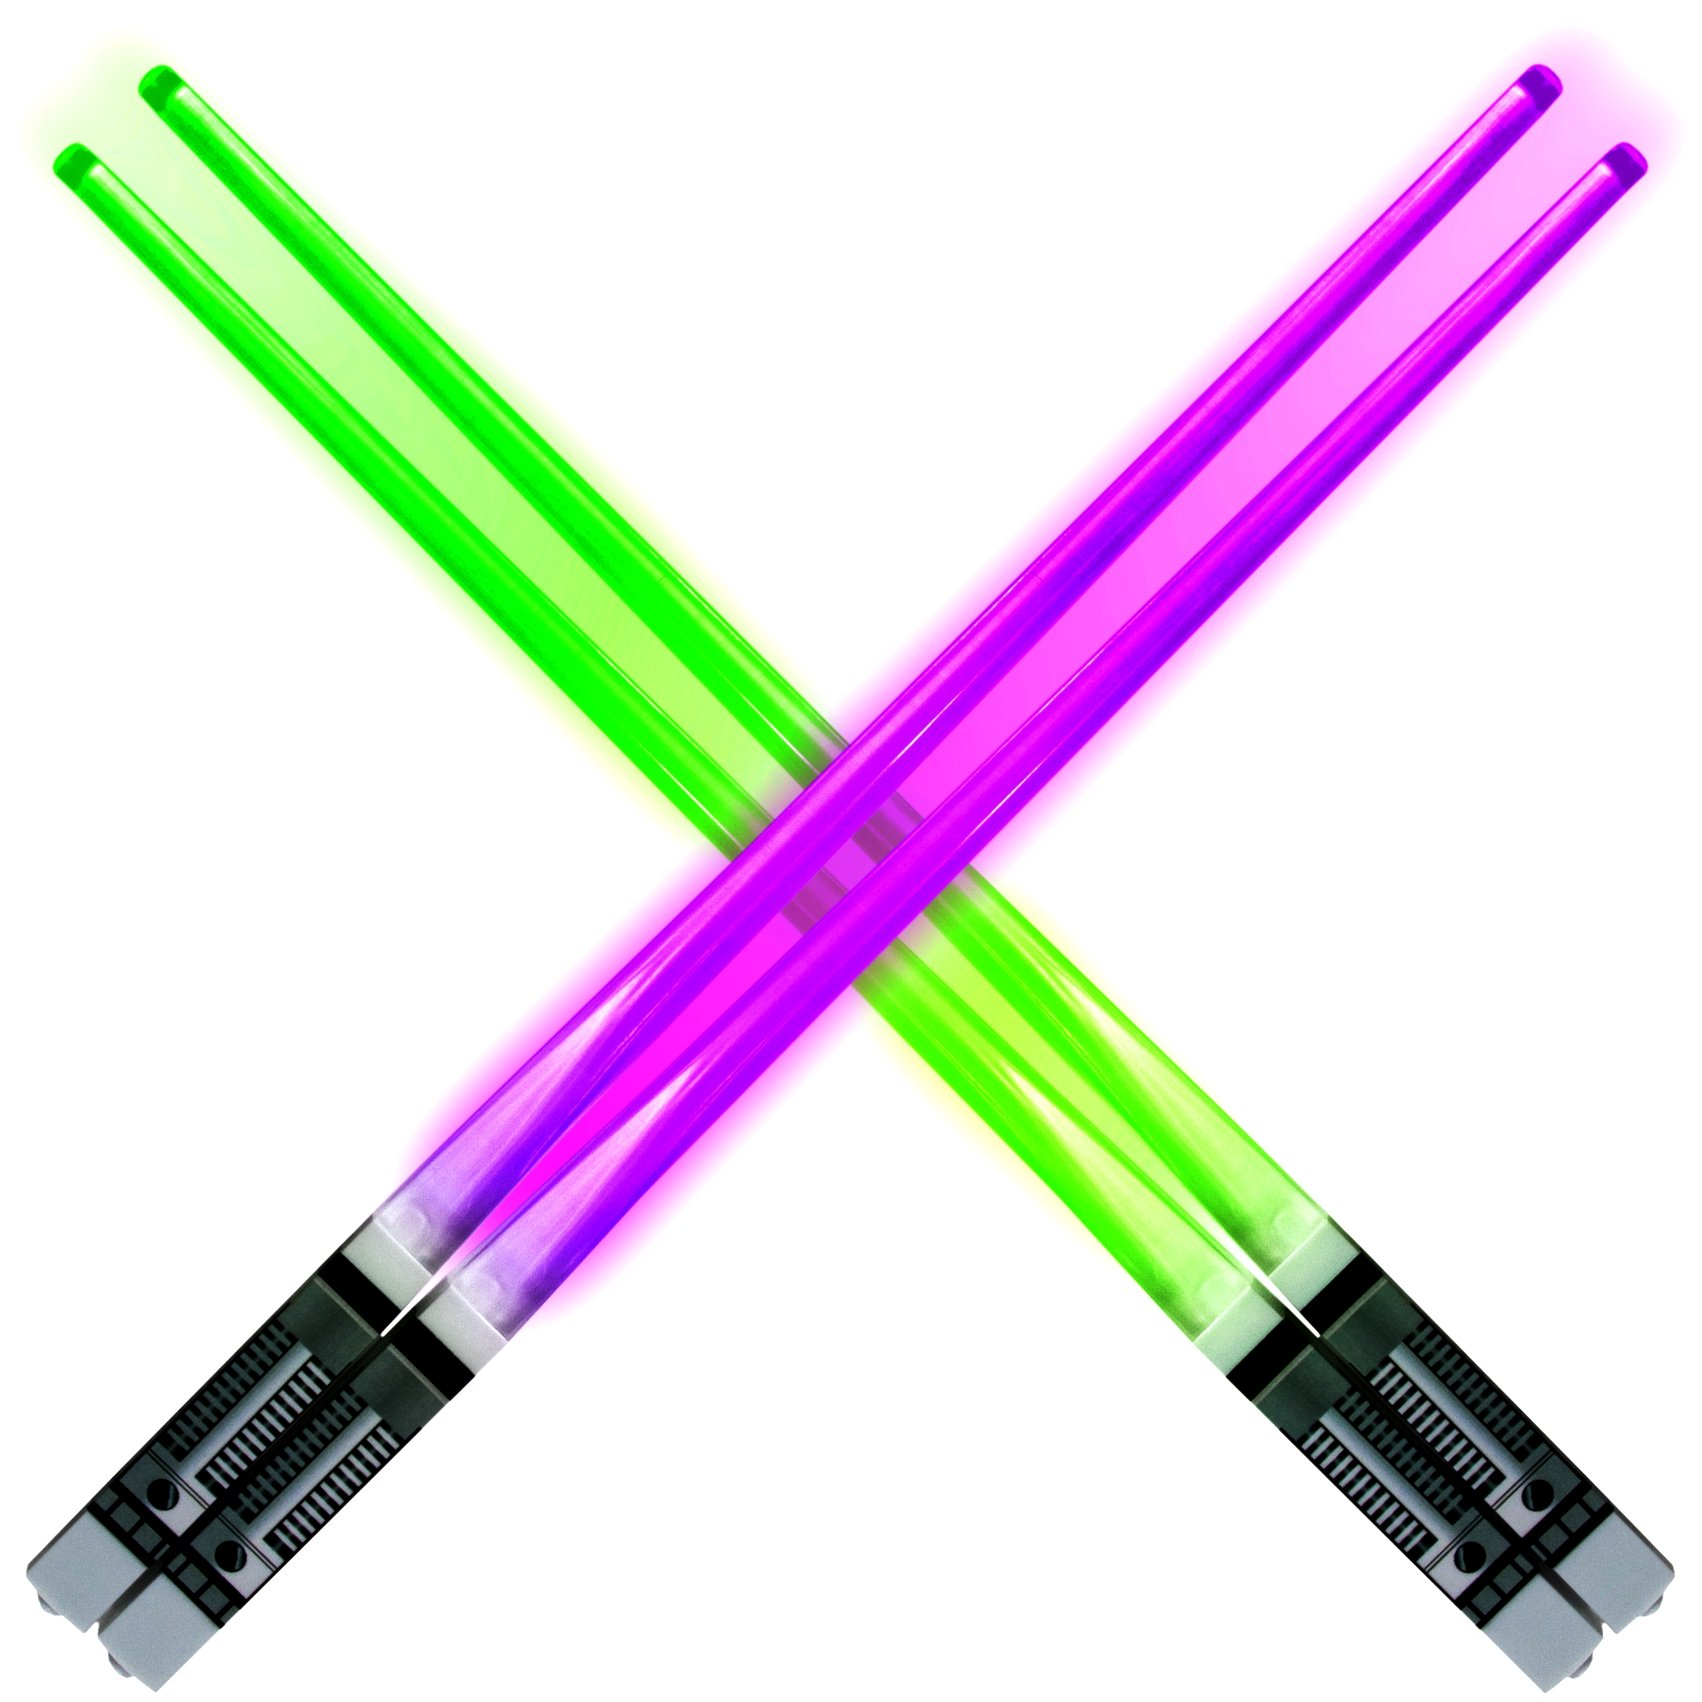 Lightsaber Light up LED Chopsticks Multi function for Star Wars Theme Party Fun for Gift Set [4 PAIR – RED/BLUE / GREEN/PURPLE SET] by Luxxis (Image #7)